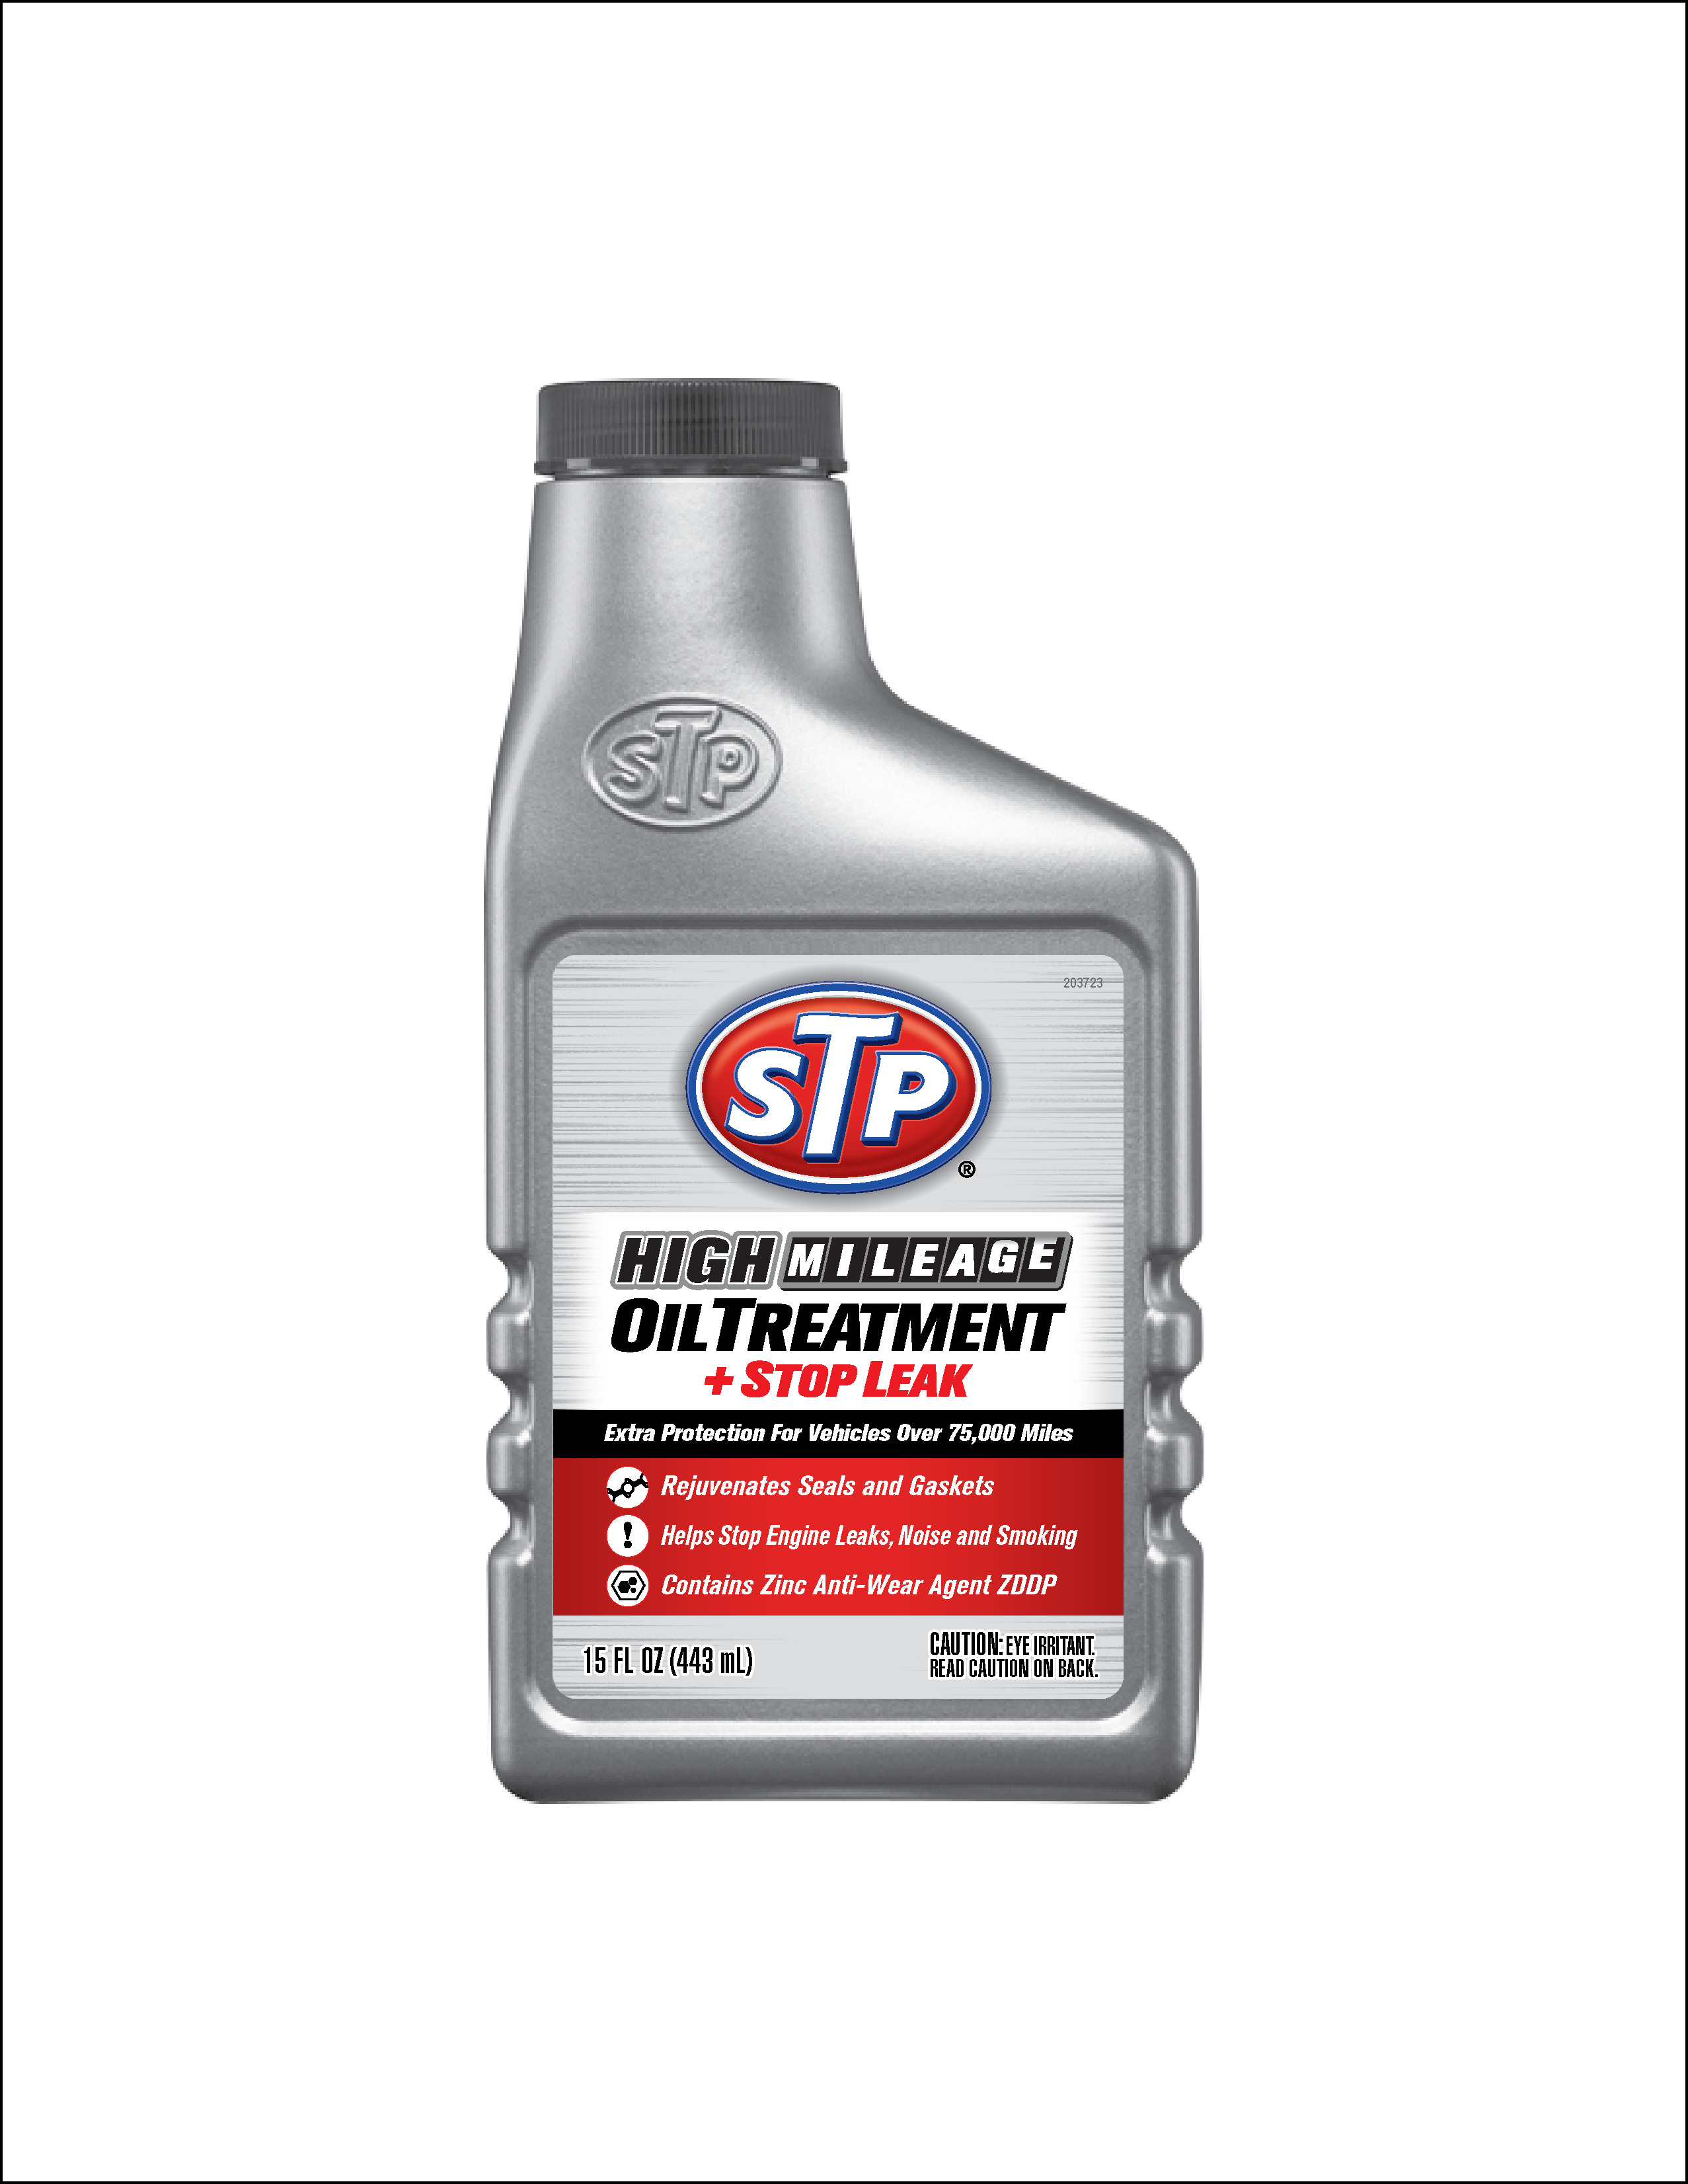 STP High Mileage Oil Treatment, Formula for Cars & Truck, Stop Leak